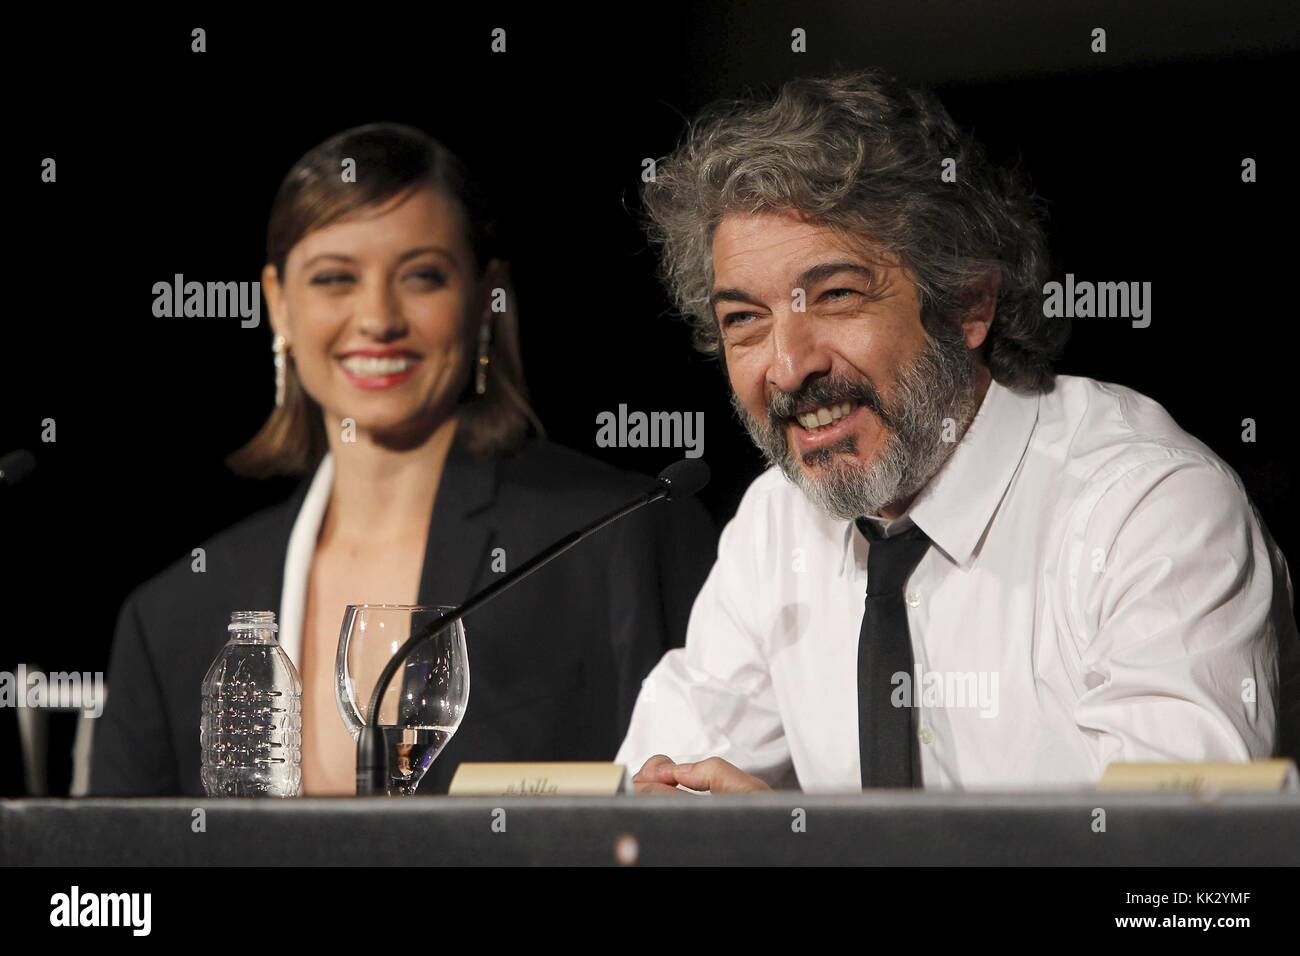 Spanish actress Michelle Jenner (L) and Argentine actor Ricardo Darin (R) present the new Christmas advert of Freixenet - Stock Image